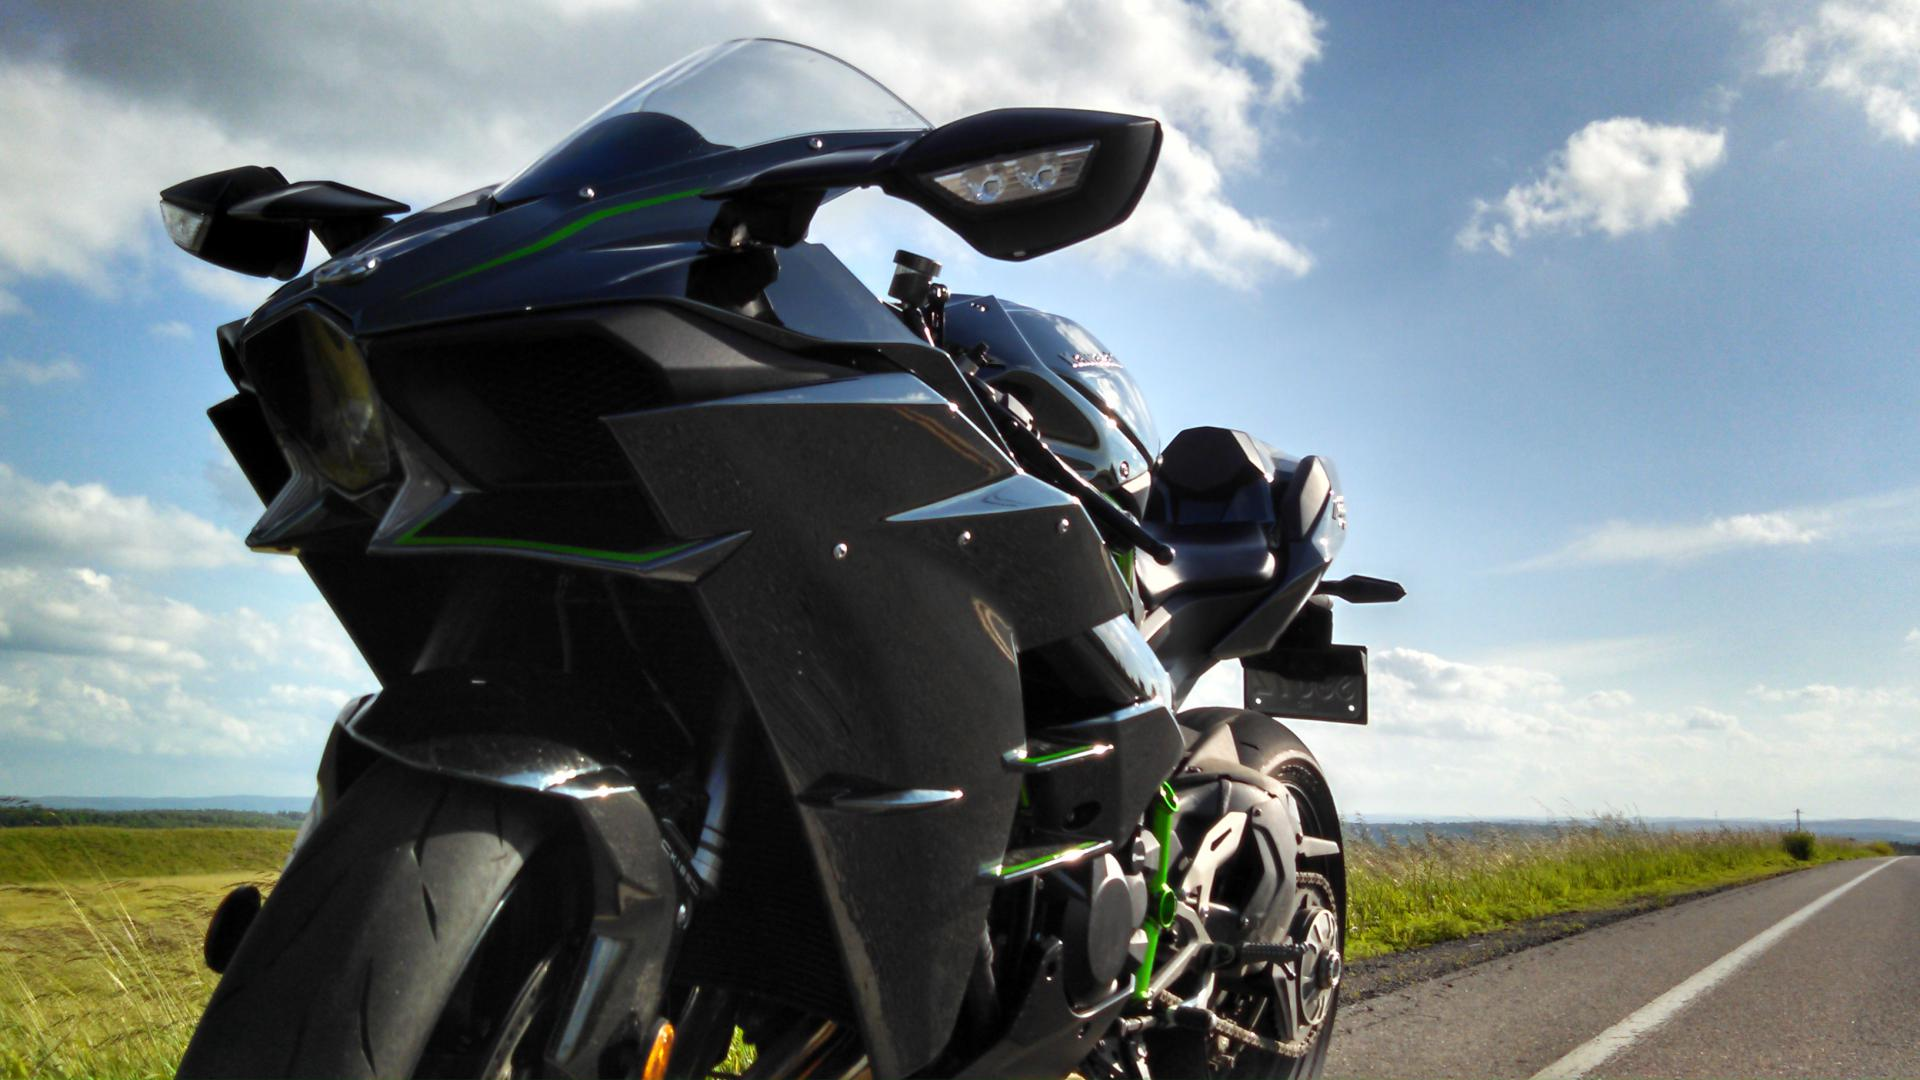 Kawasaki Ninja H2r Picture HD For PC